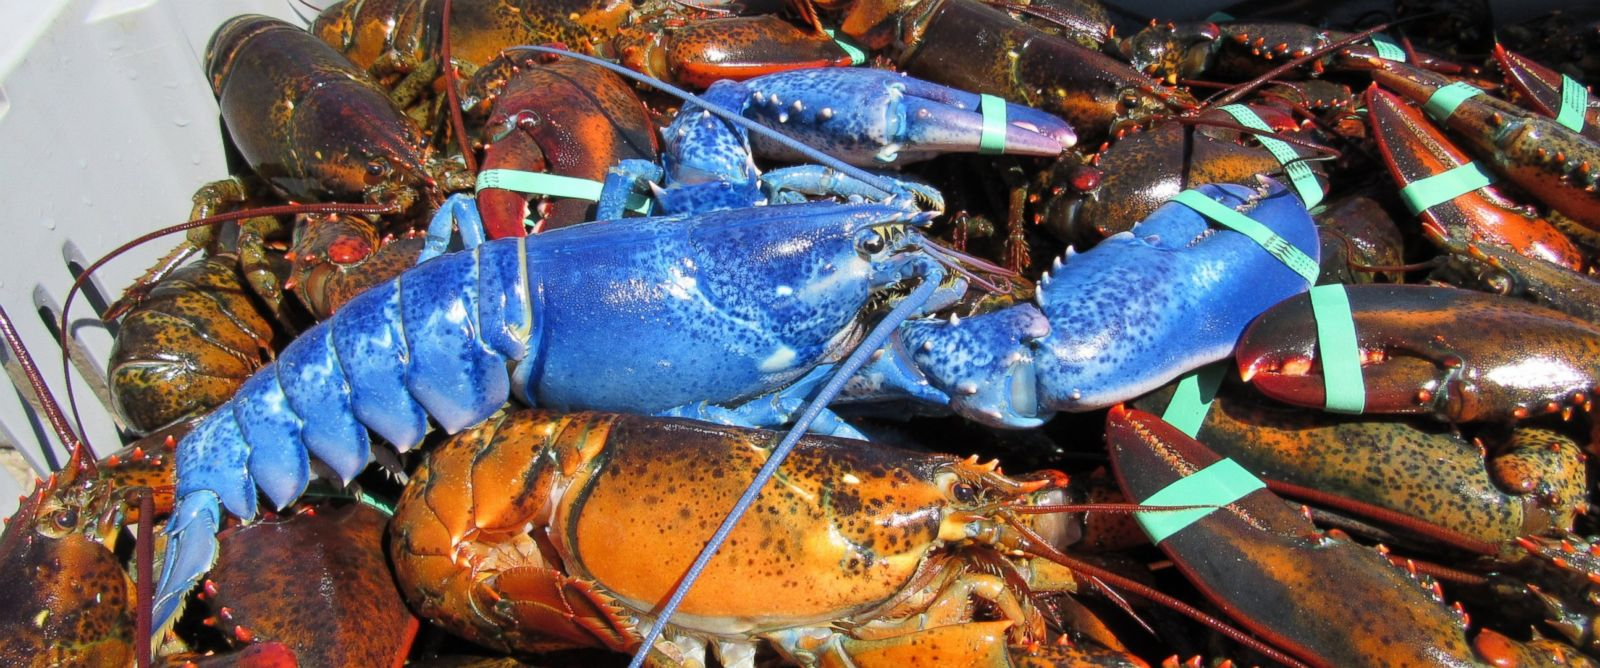 PHOTO: Massachusetts lobsterman, Wayne Nickerson, caught a 2-pound blue lobster off the coast of Cape Cod.